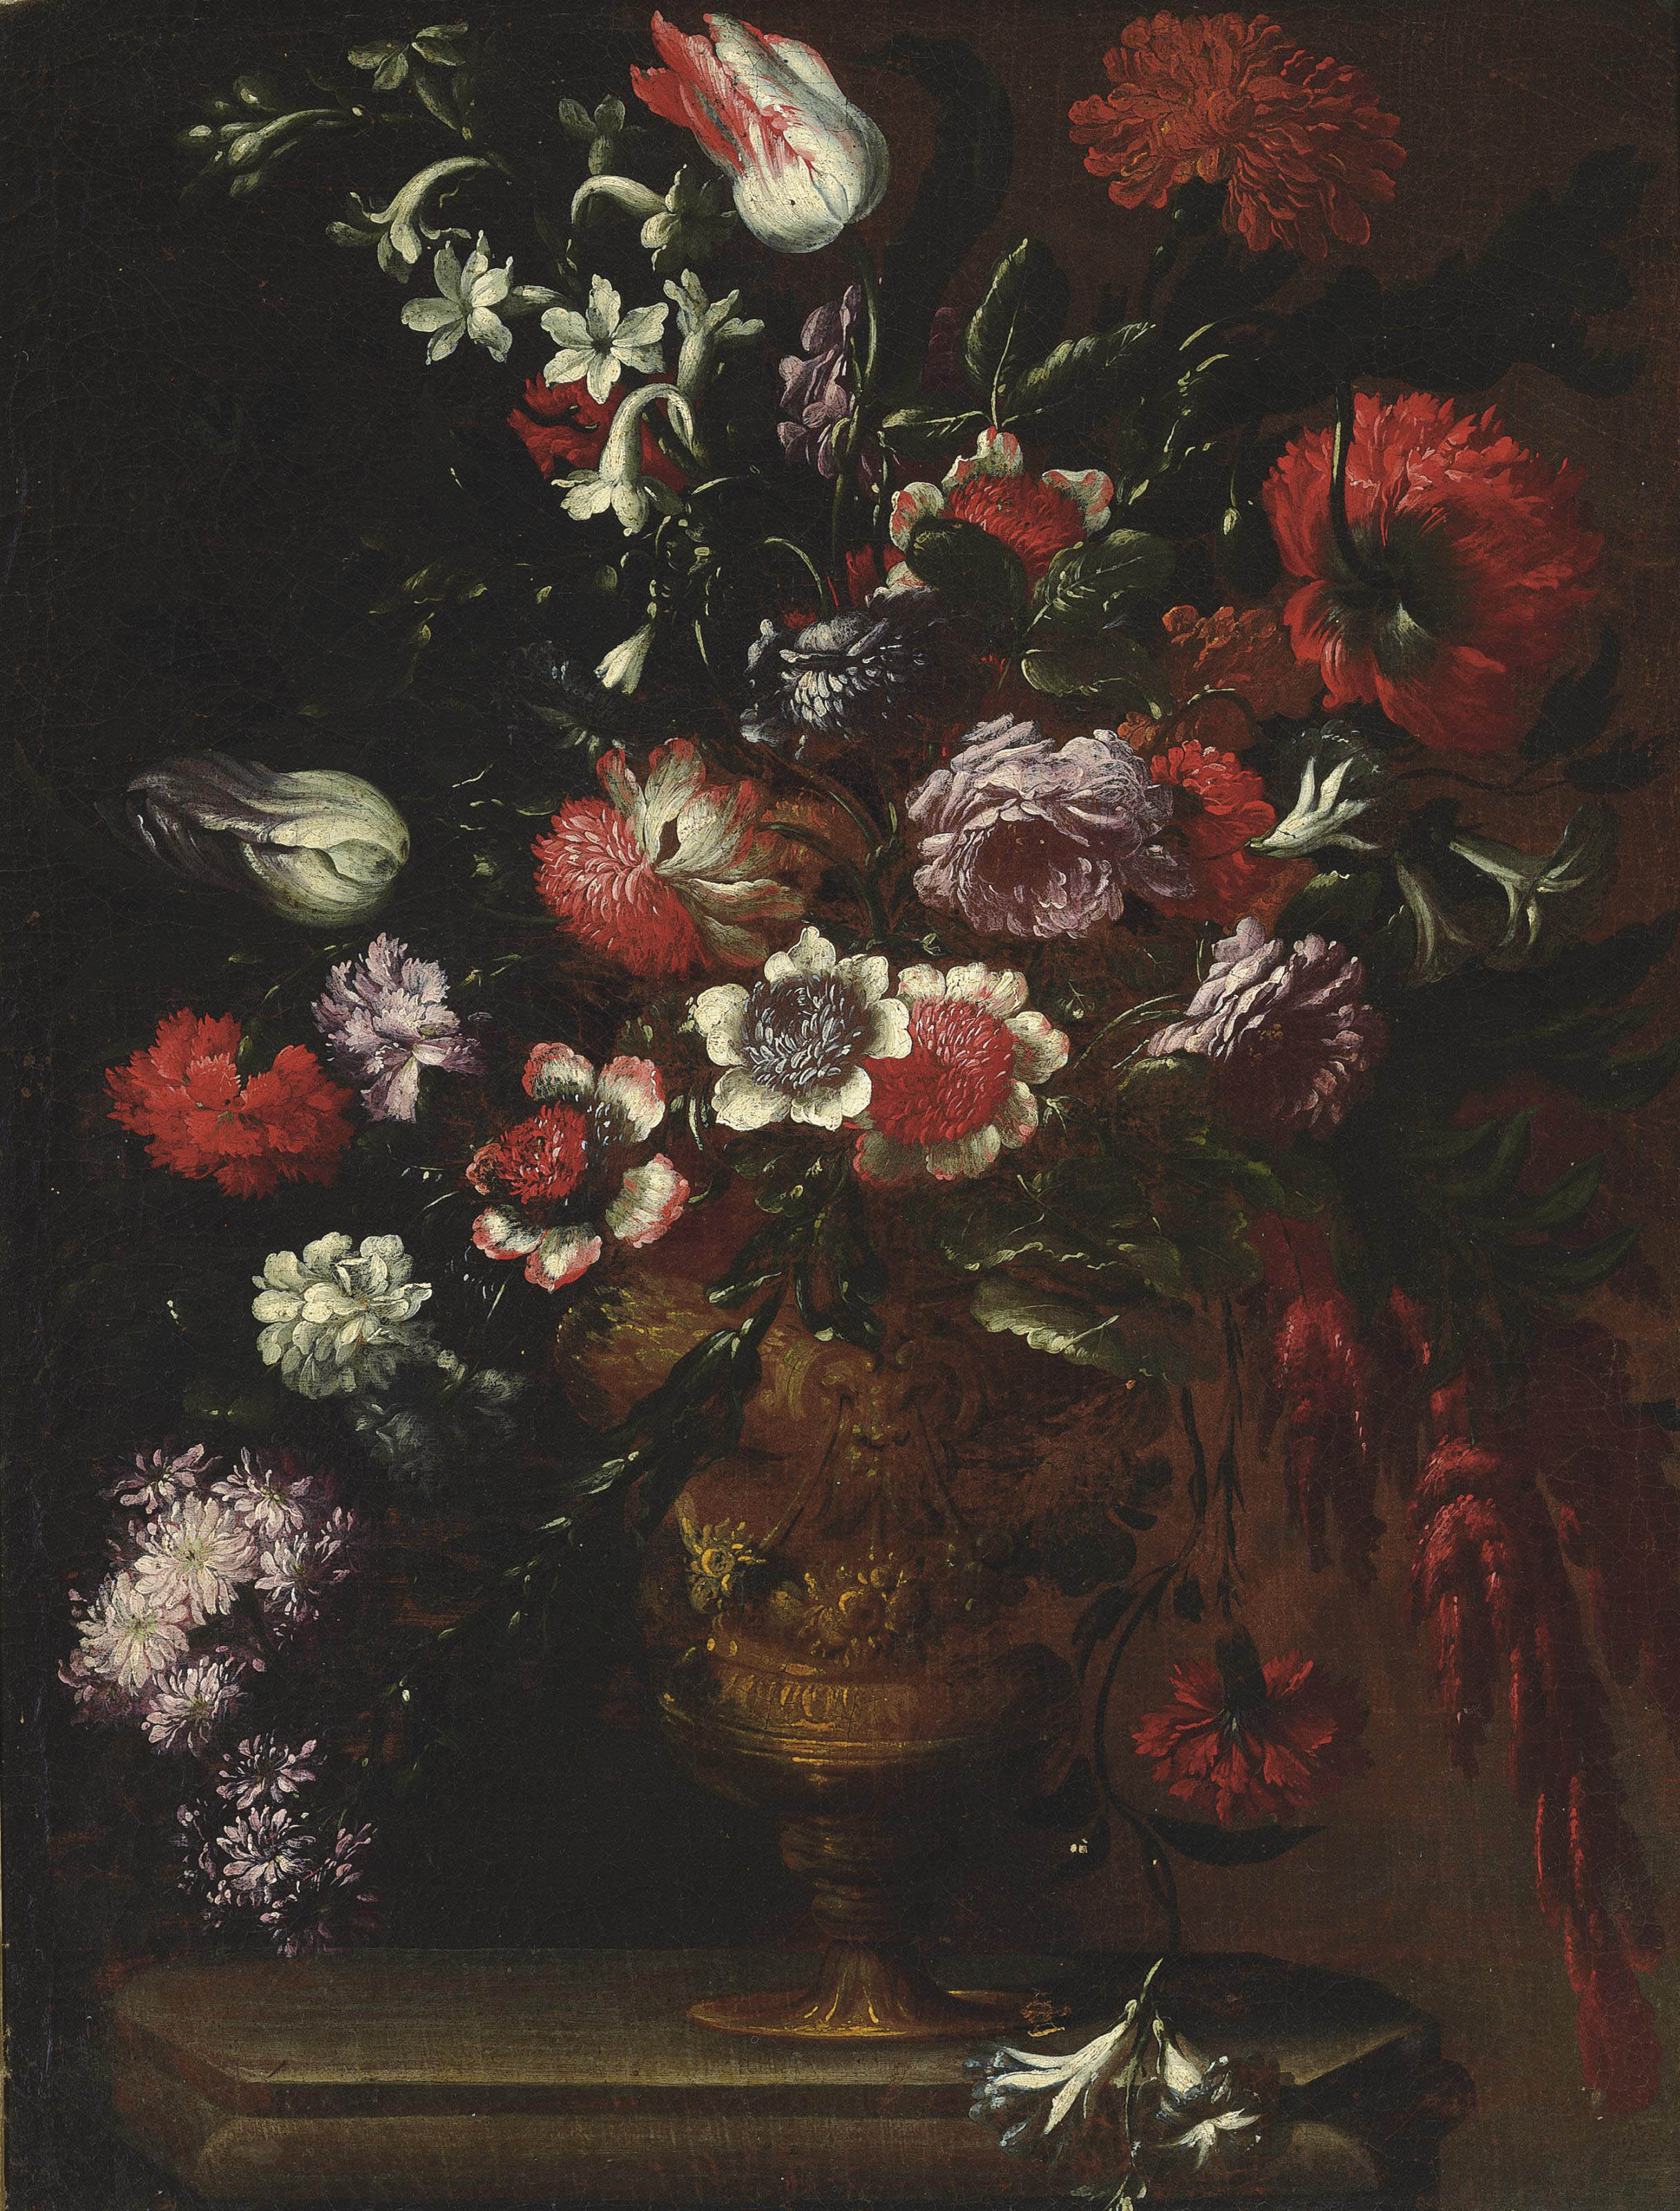 Roses, carnations, tulips, poppies and other flowers in an urn on a ledge